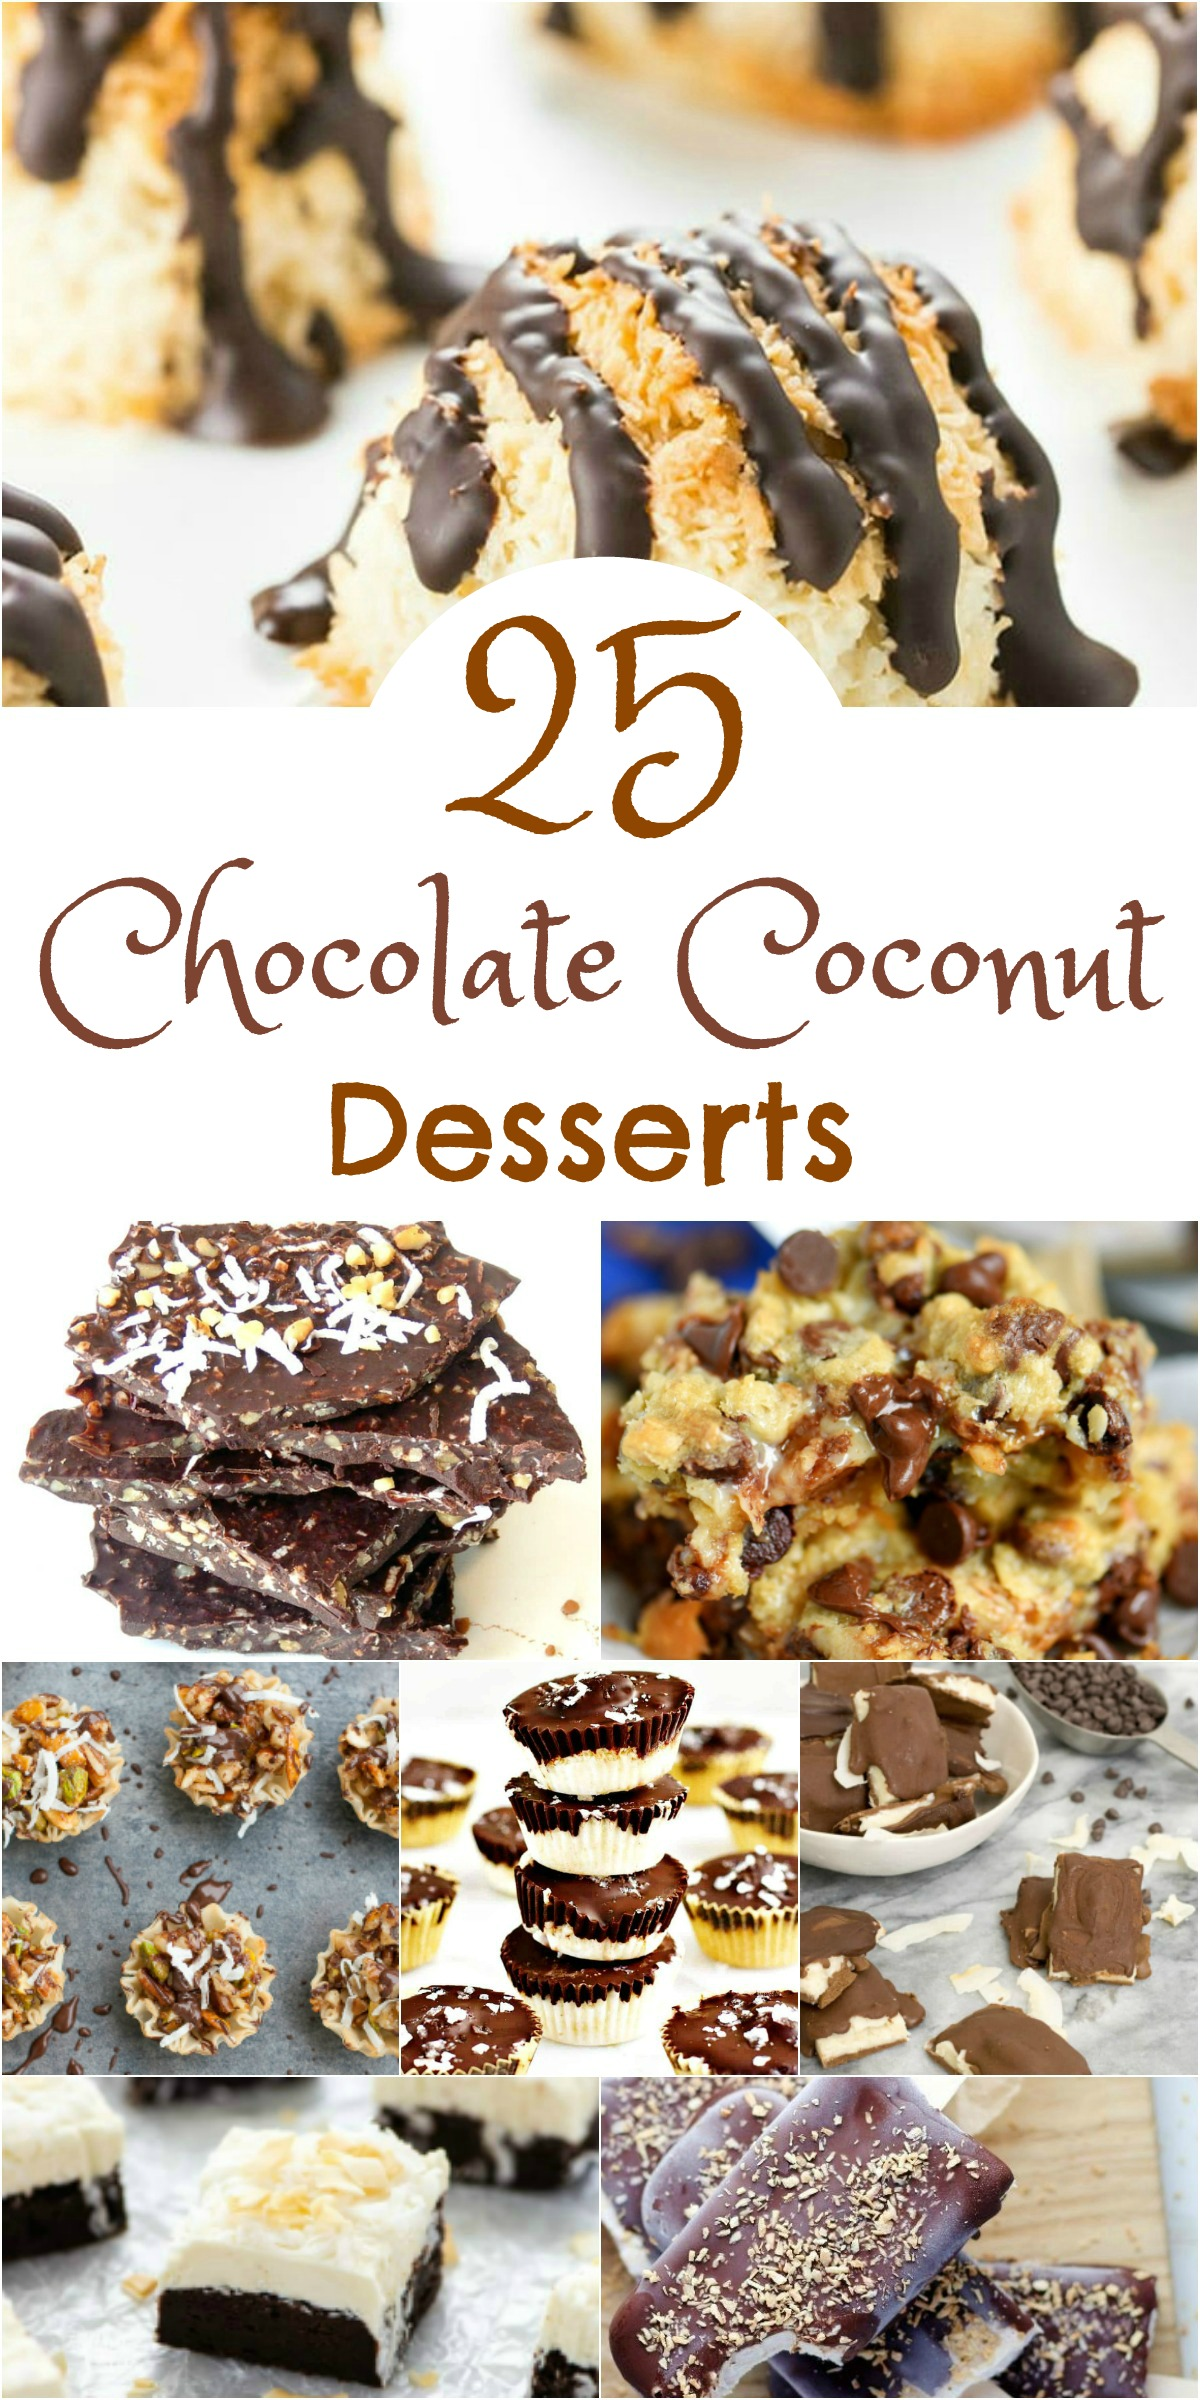 25 Chocolate Coconut Desserts that will Make you Drool!